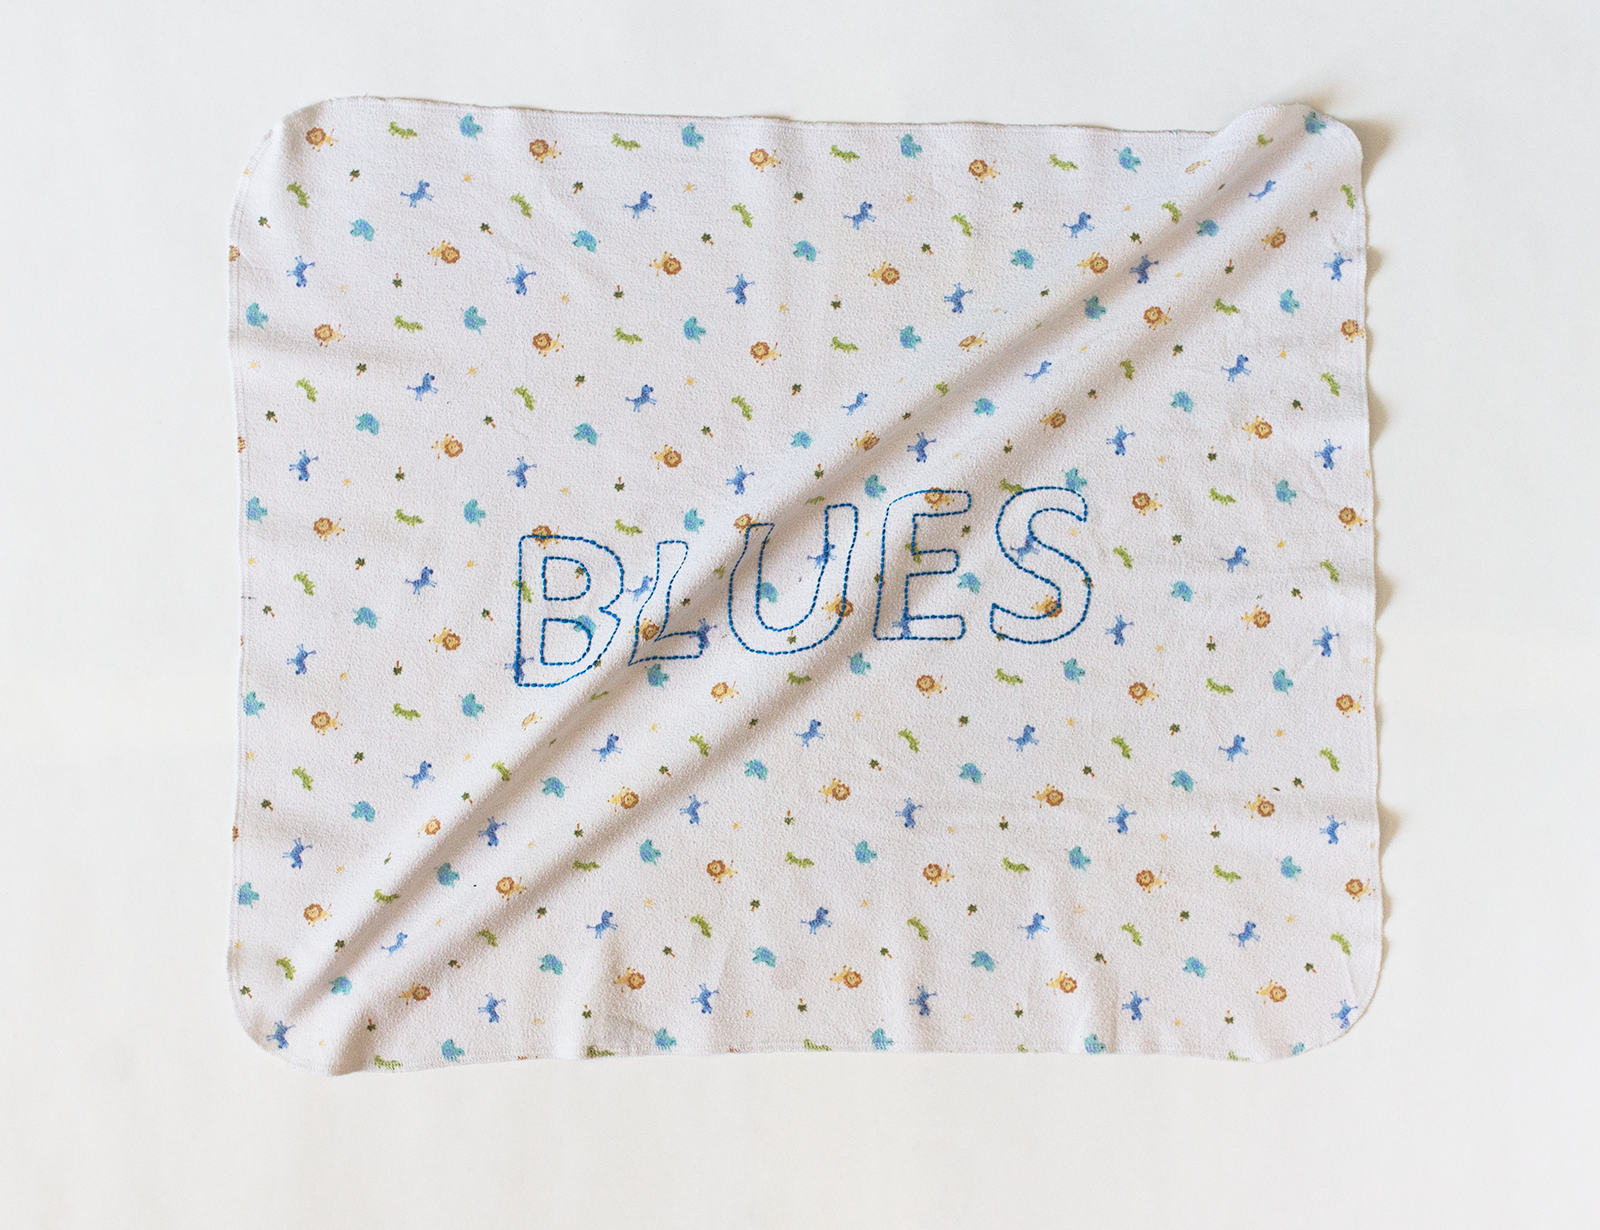 'Baby Blues', embroidery on baby blanket.